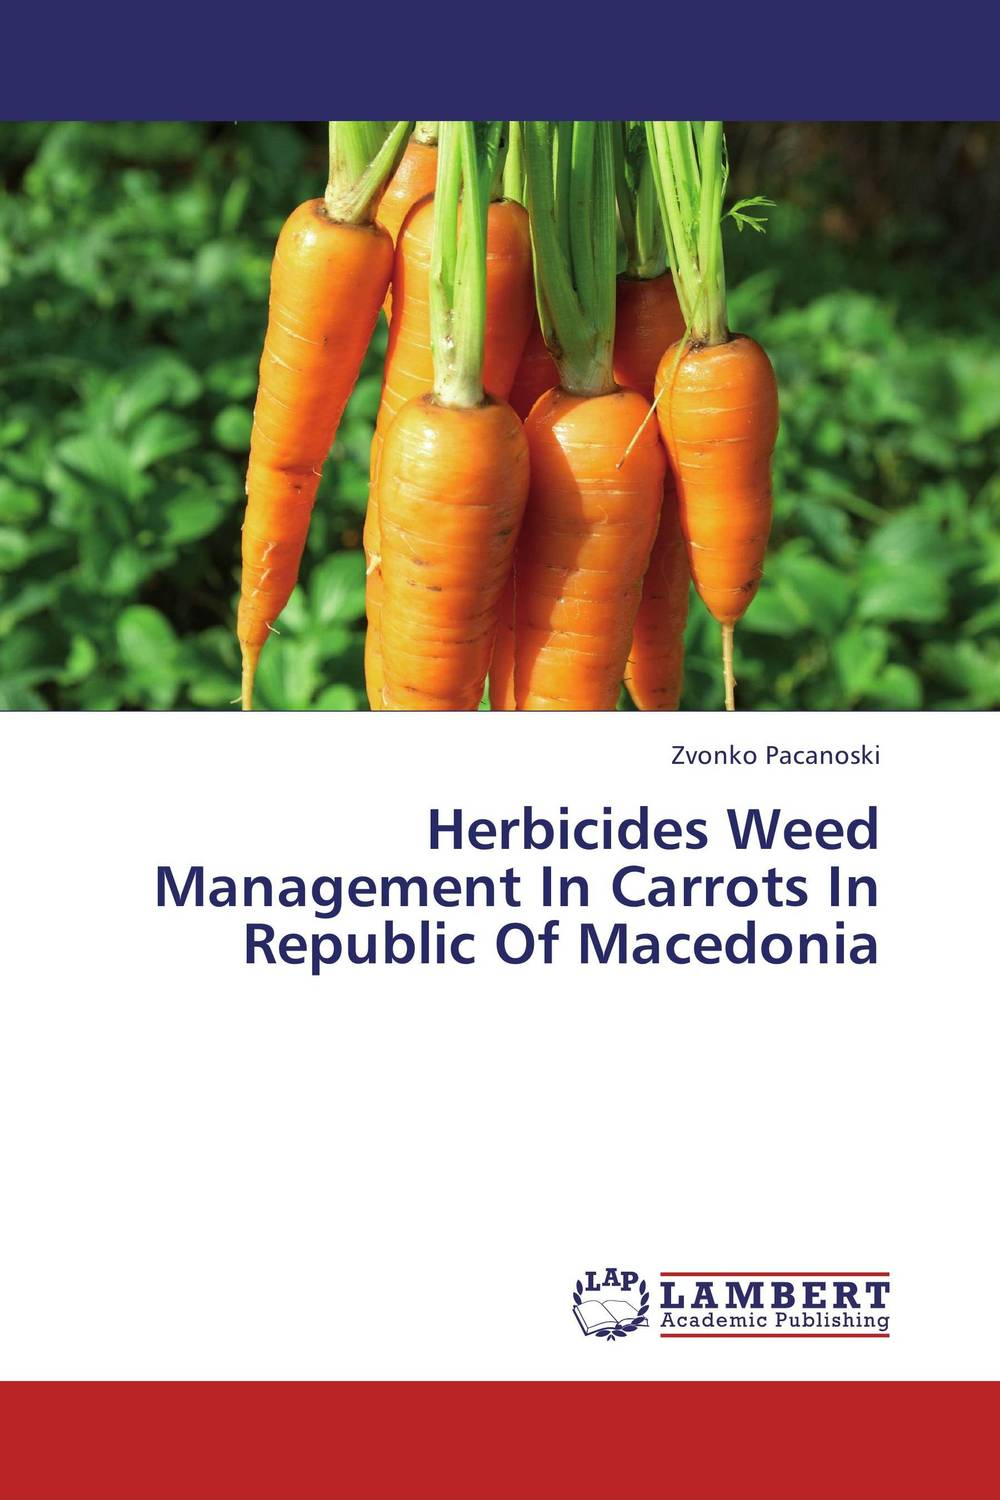 Herbicides Weed Management In Carrots In Republic Of Macedonia efficiency of pig farm production in the republic of macedonia